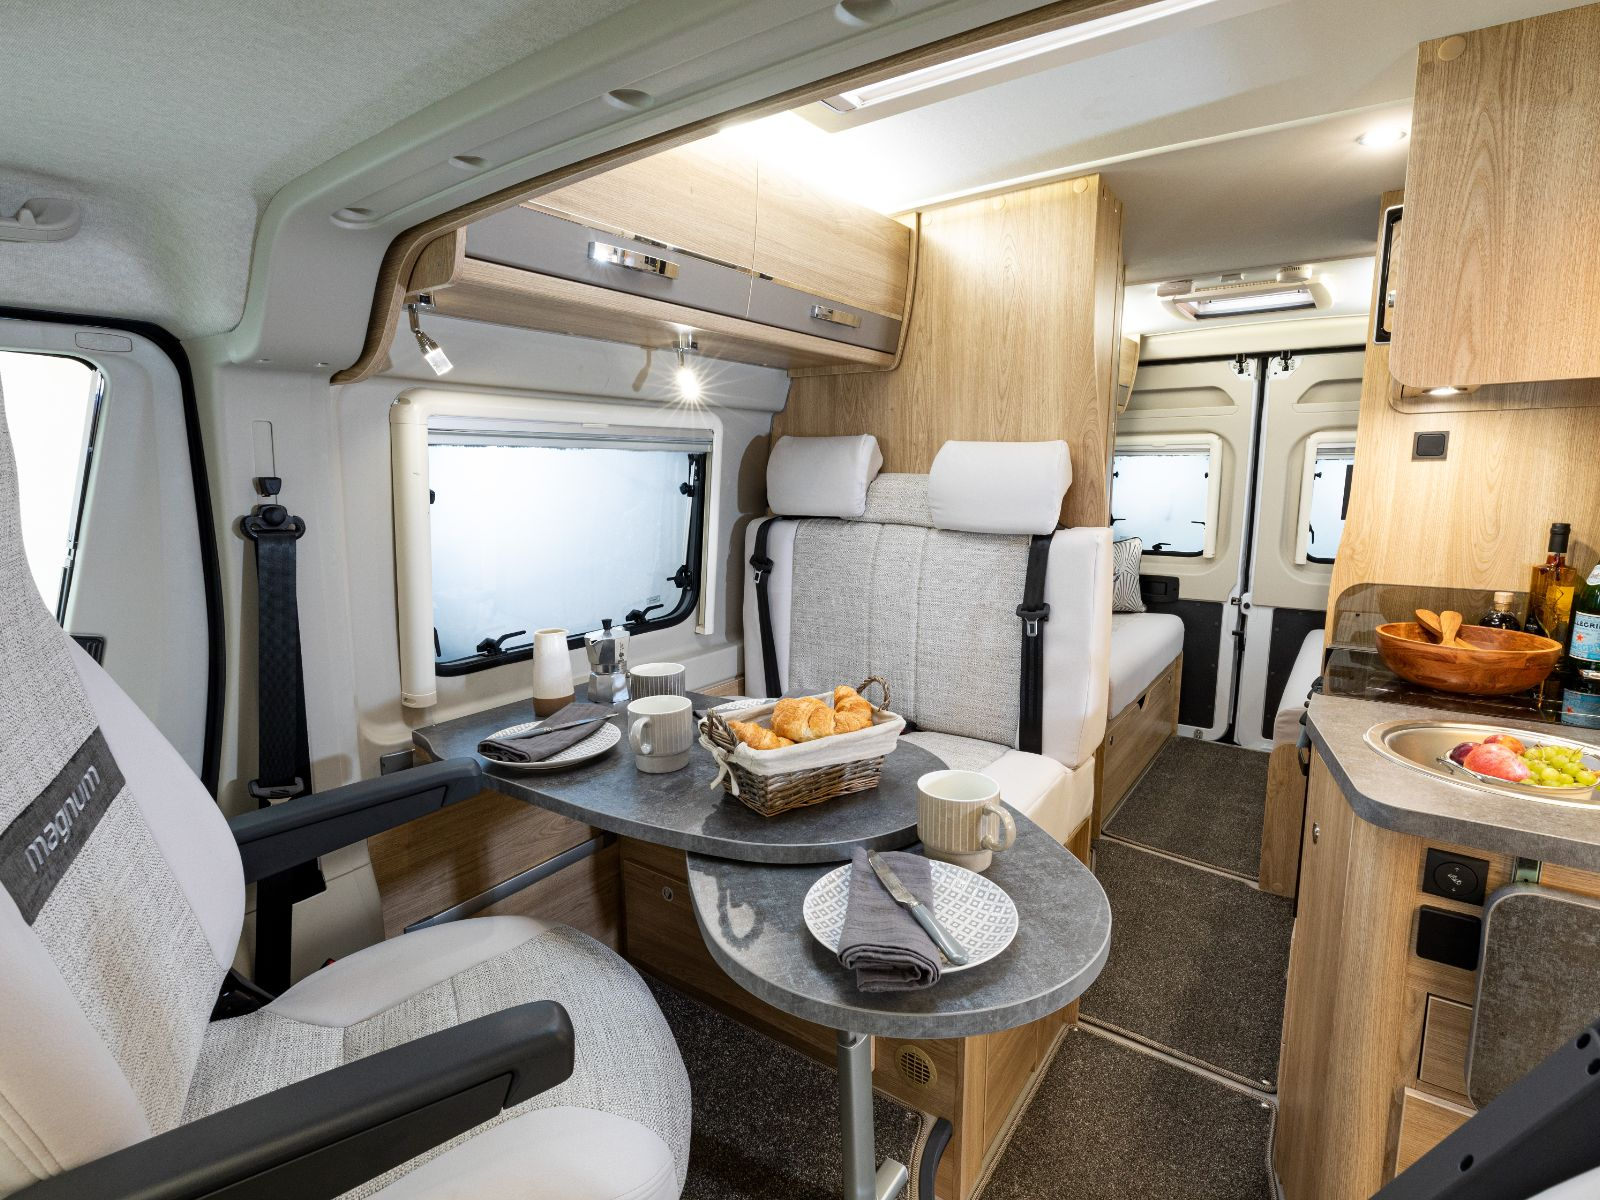 Magnum GTV Campervan Passenger View of Dining and Kitchen Area'